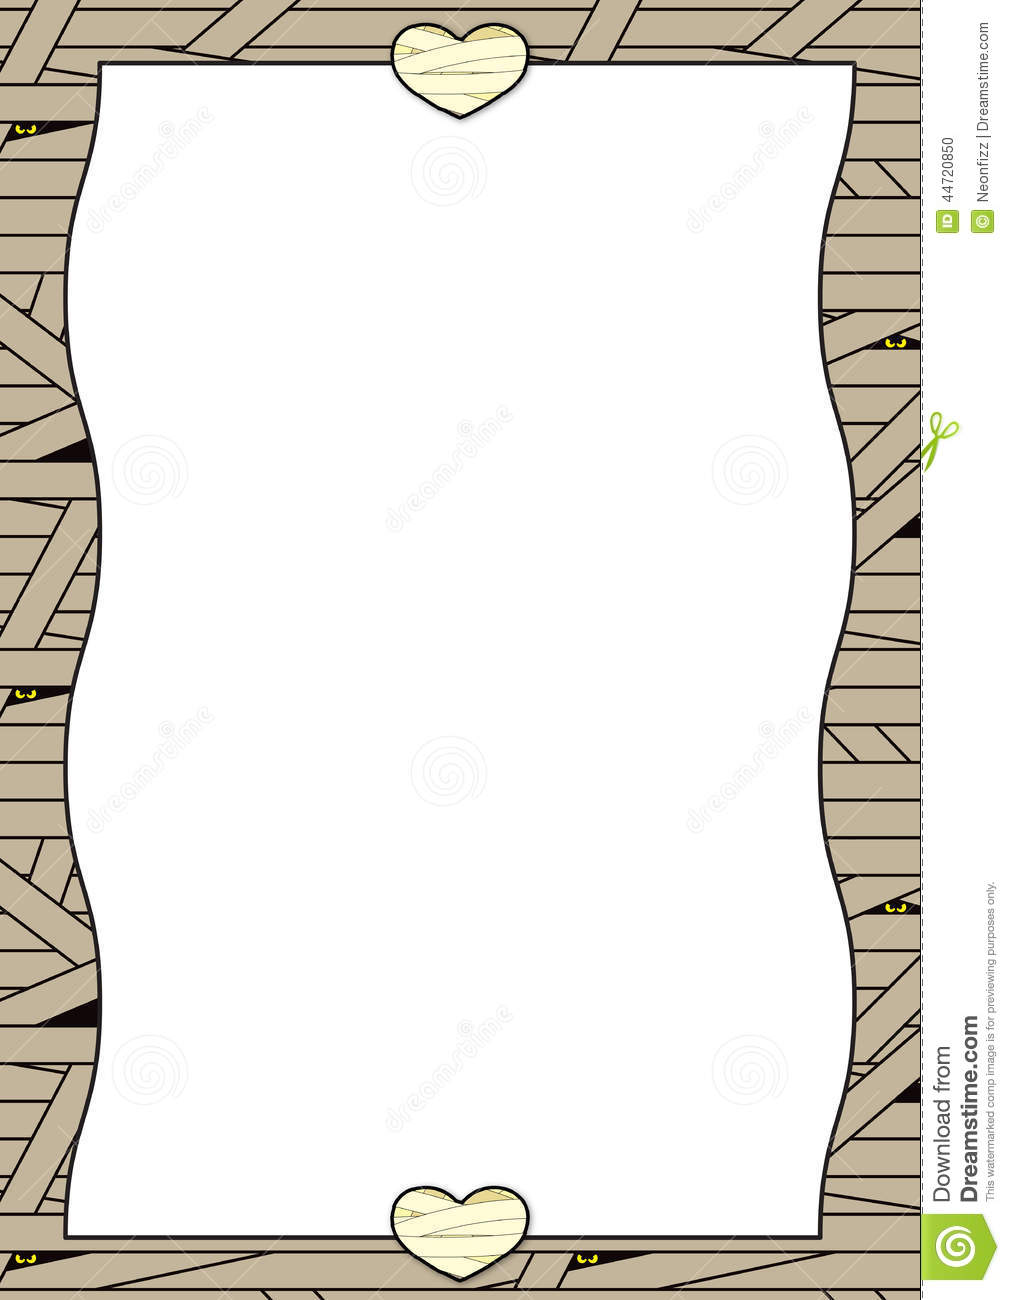 halloween background bandaged mummy stock illustration halloween costume clipart images halloween costume contest clipart